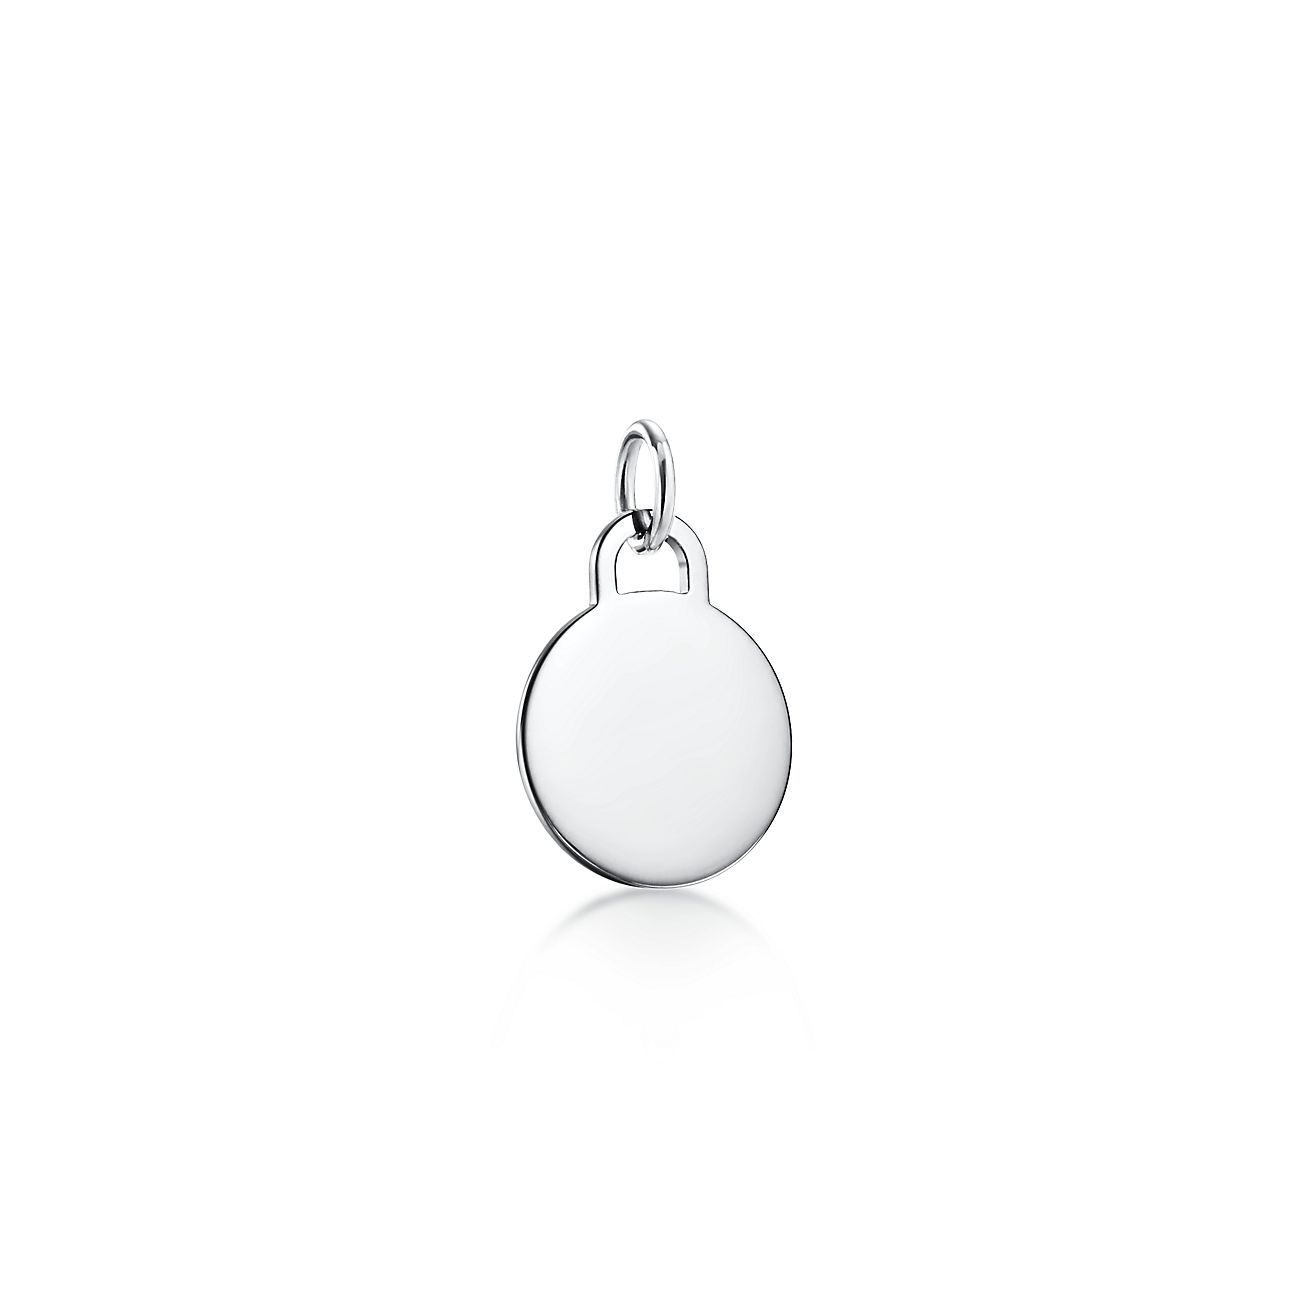 Tiffany Charms round tag charm in sterling silver, small Tiffany & Co.